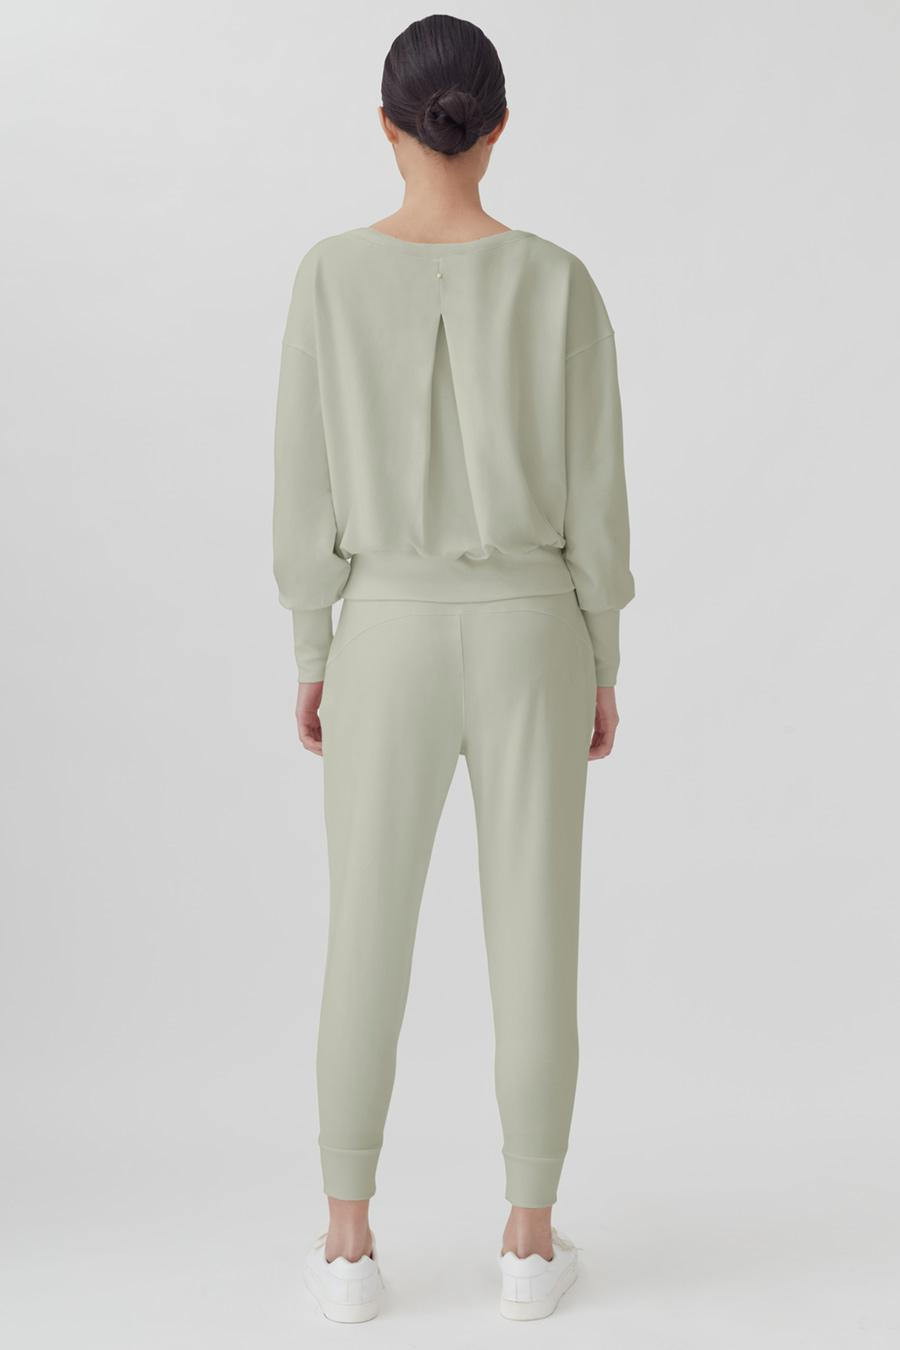 Women's French Terry Boatneck Sweatshirt in Sage | Size: 2